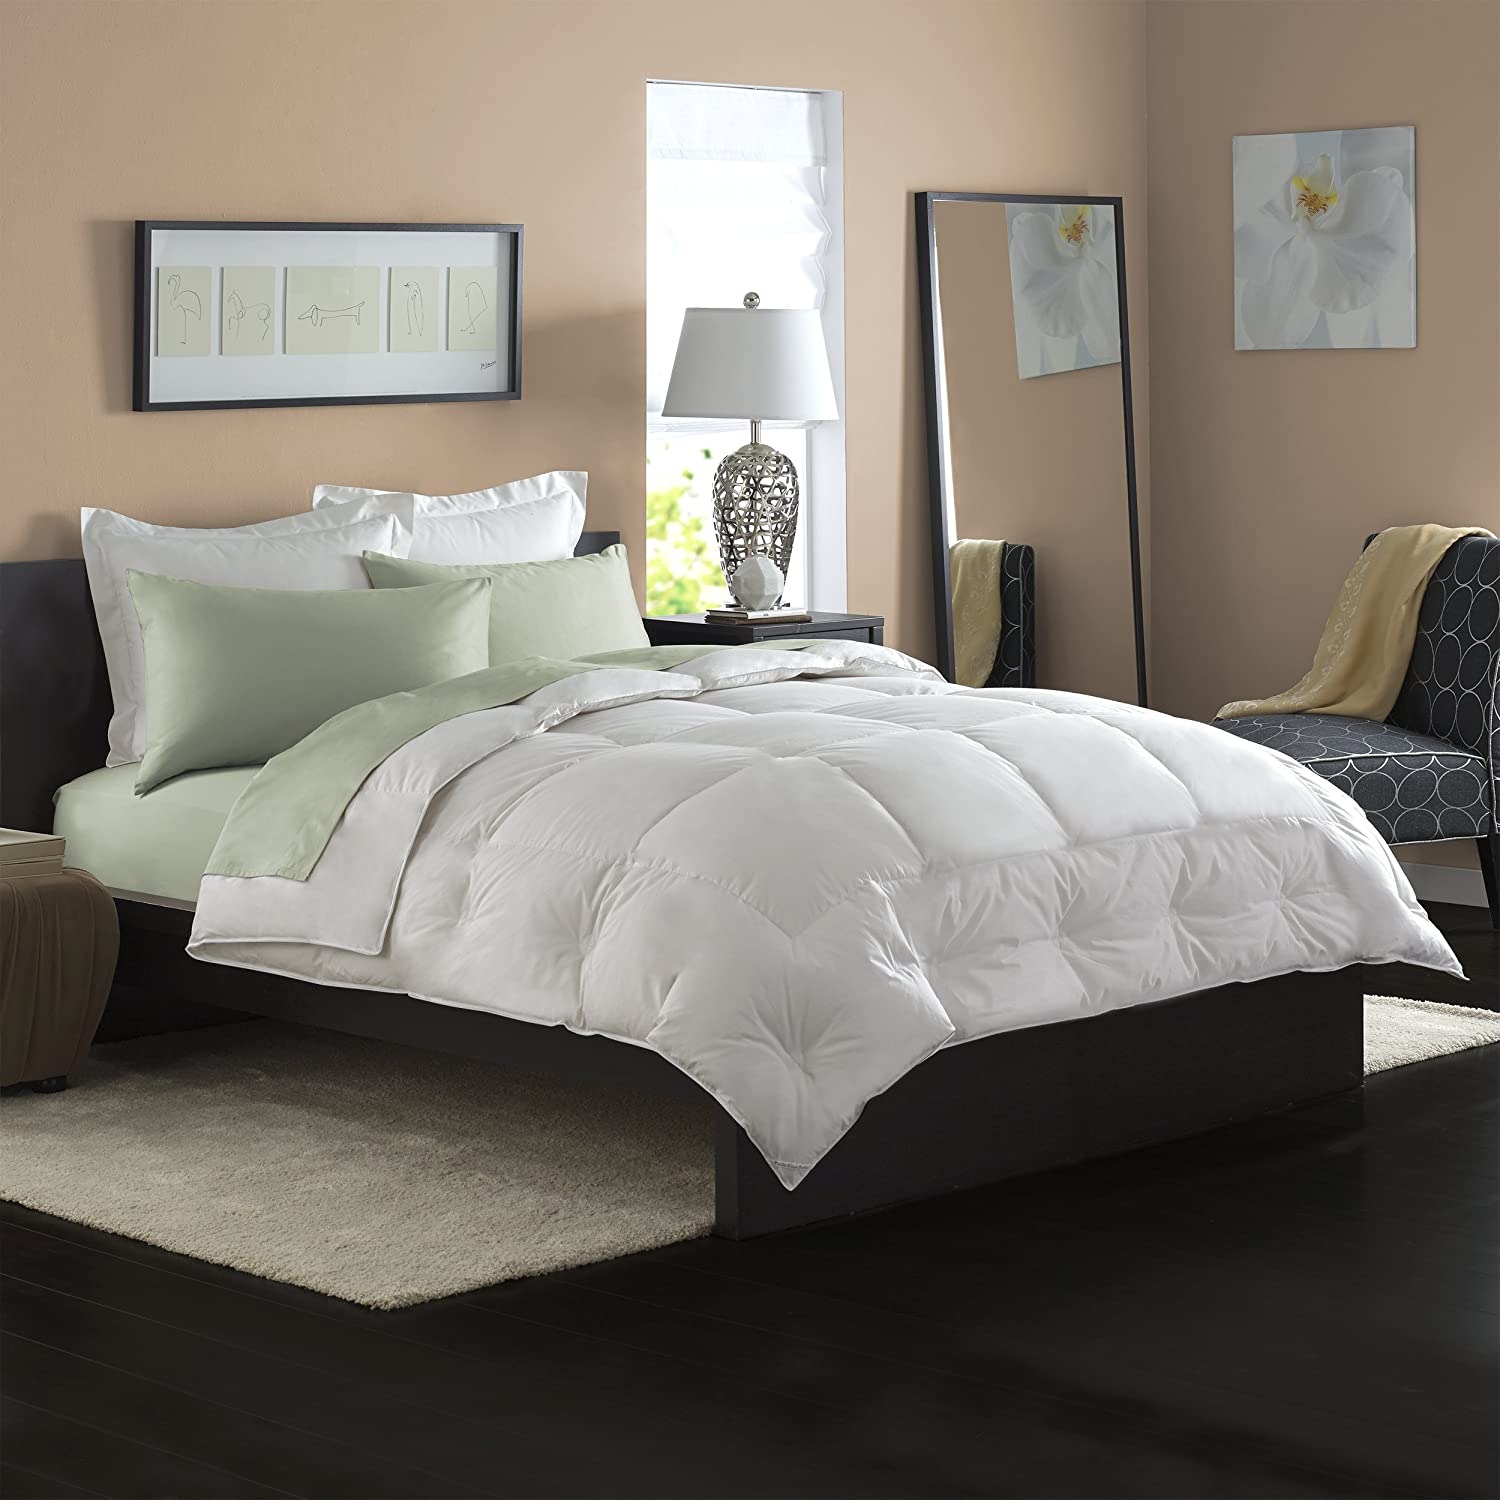 bedding products image best blog luxury pillow twin down nc hotel pacific comforter guides coast of gift prod